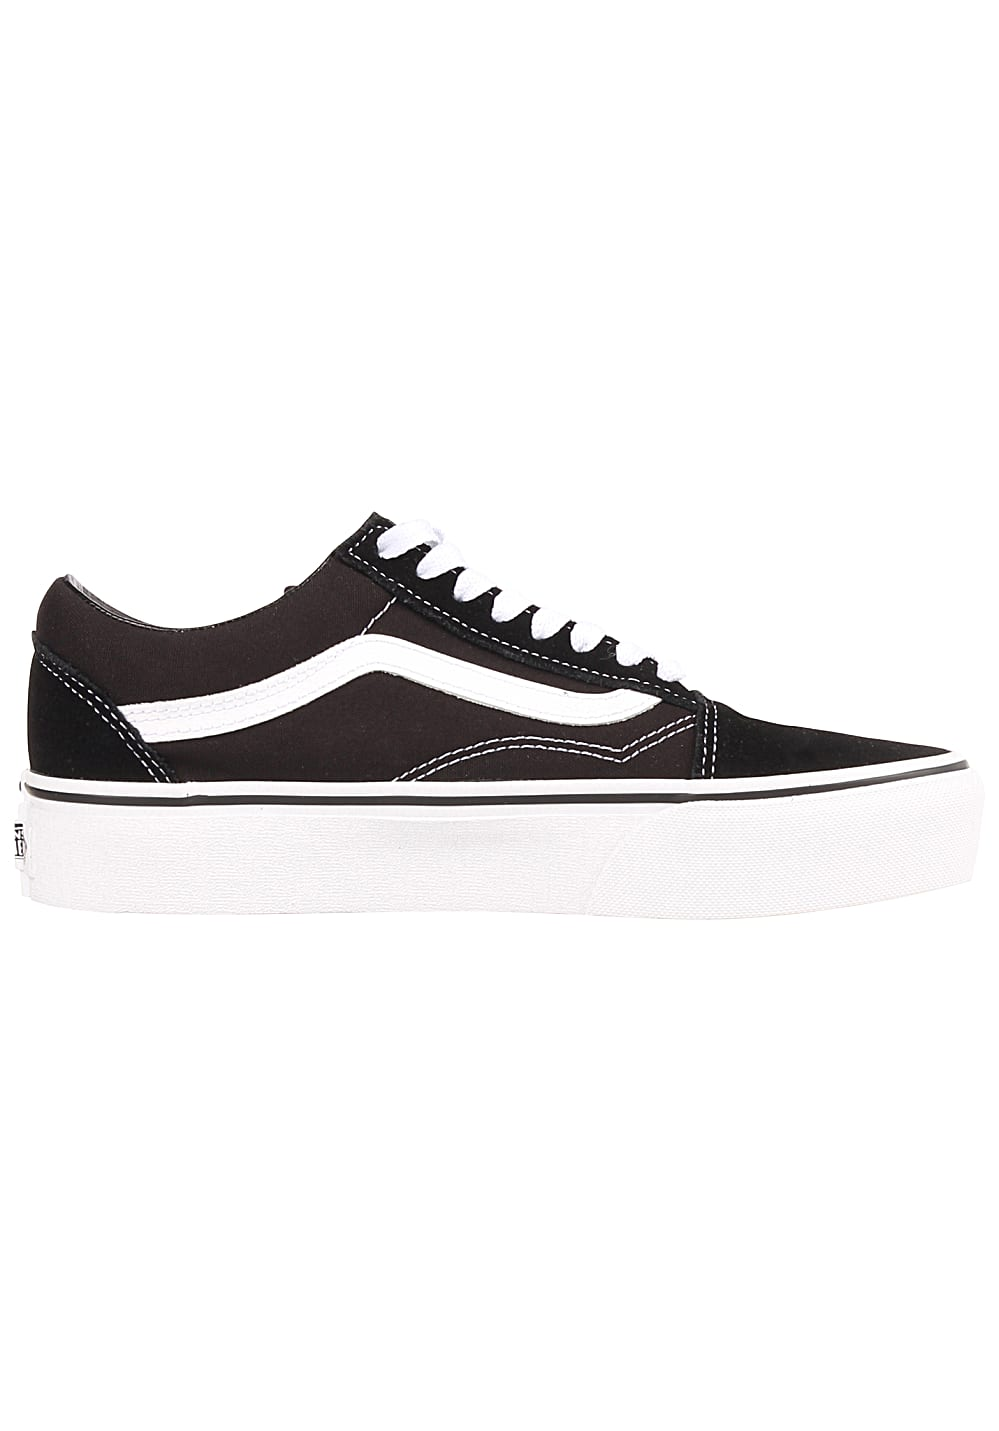 782e6f1b53 Next. Vans. Old Skool Platform - Sneakers for Women. €84.95. incl. VAT plus  shipping costs